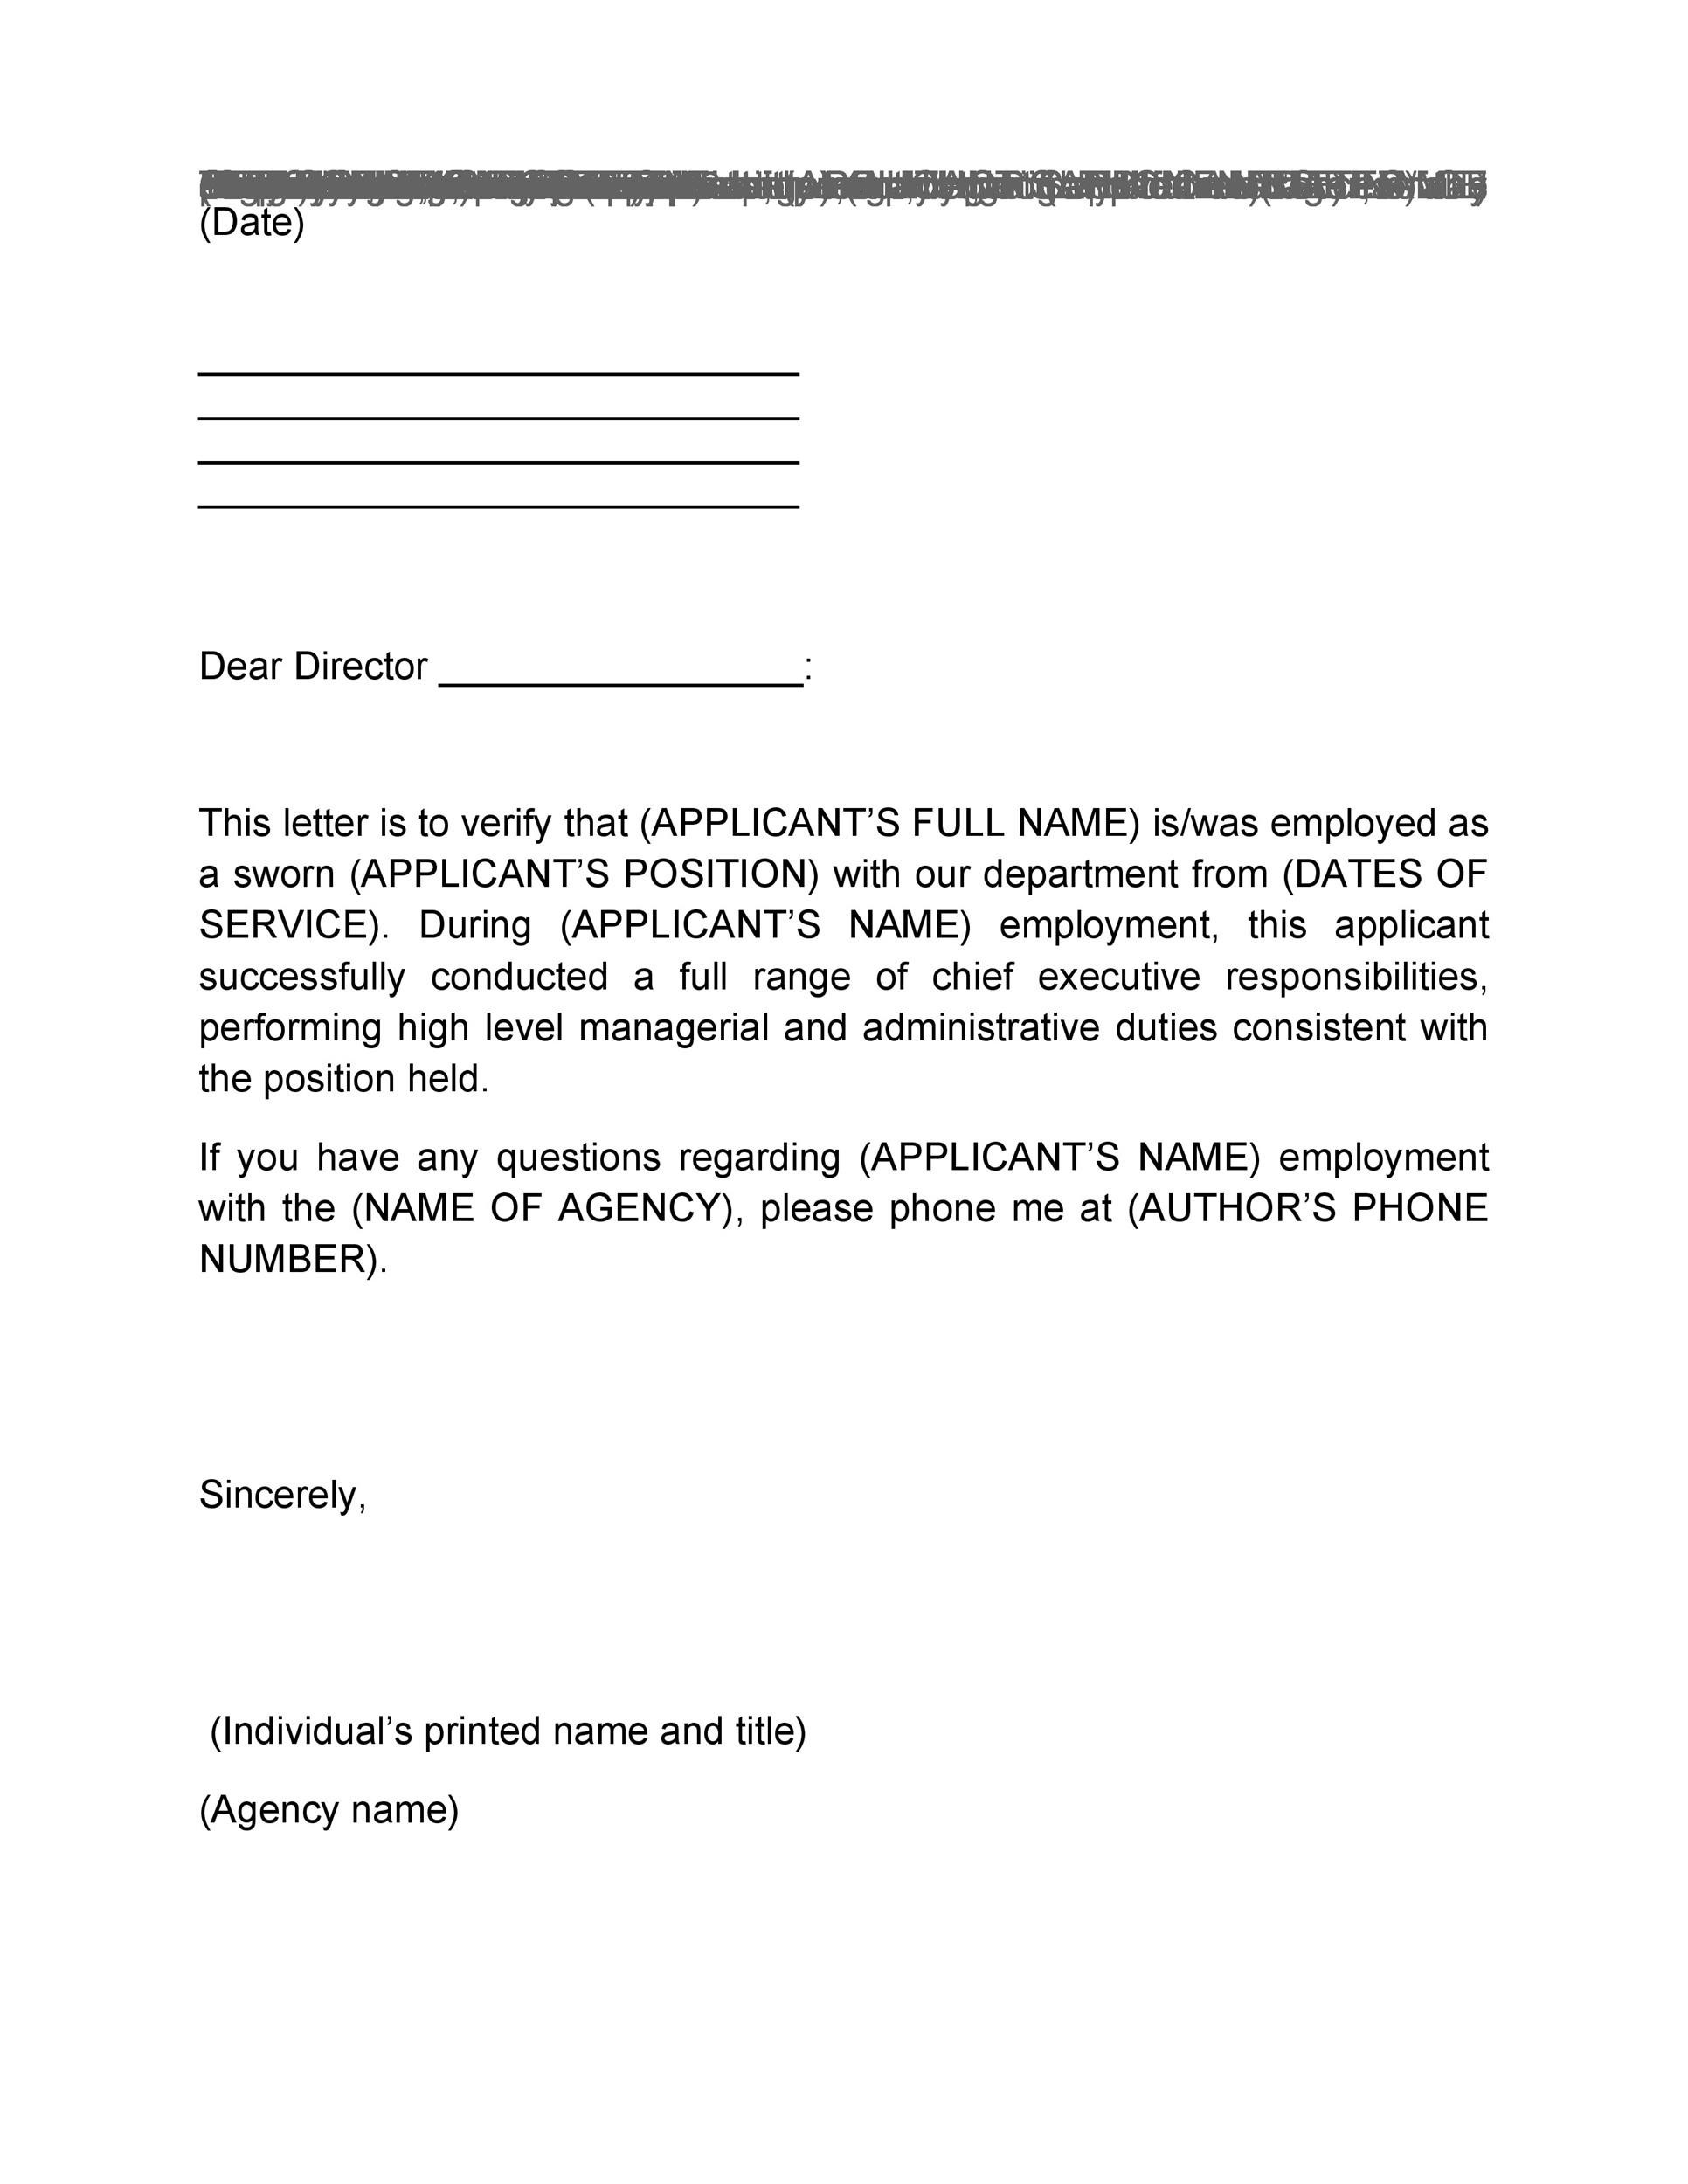 Verification of employment letter template spiritdancerdesigns Choice Image